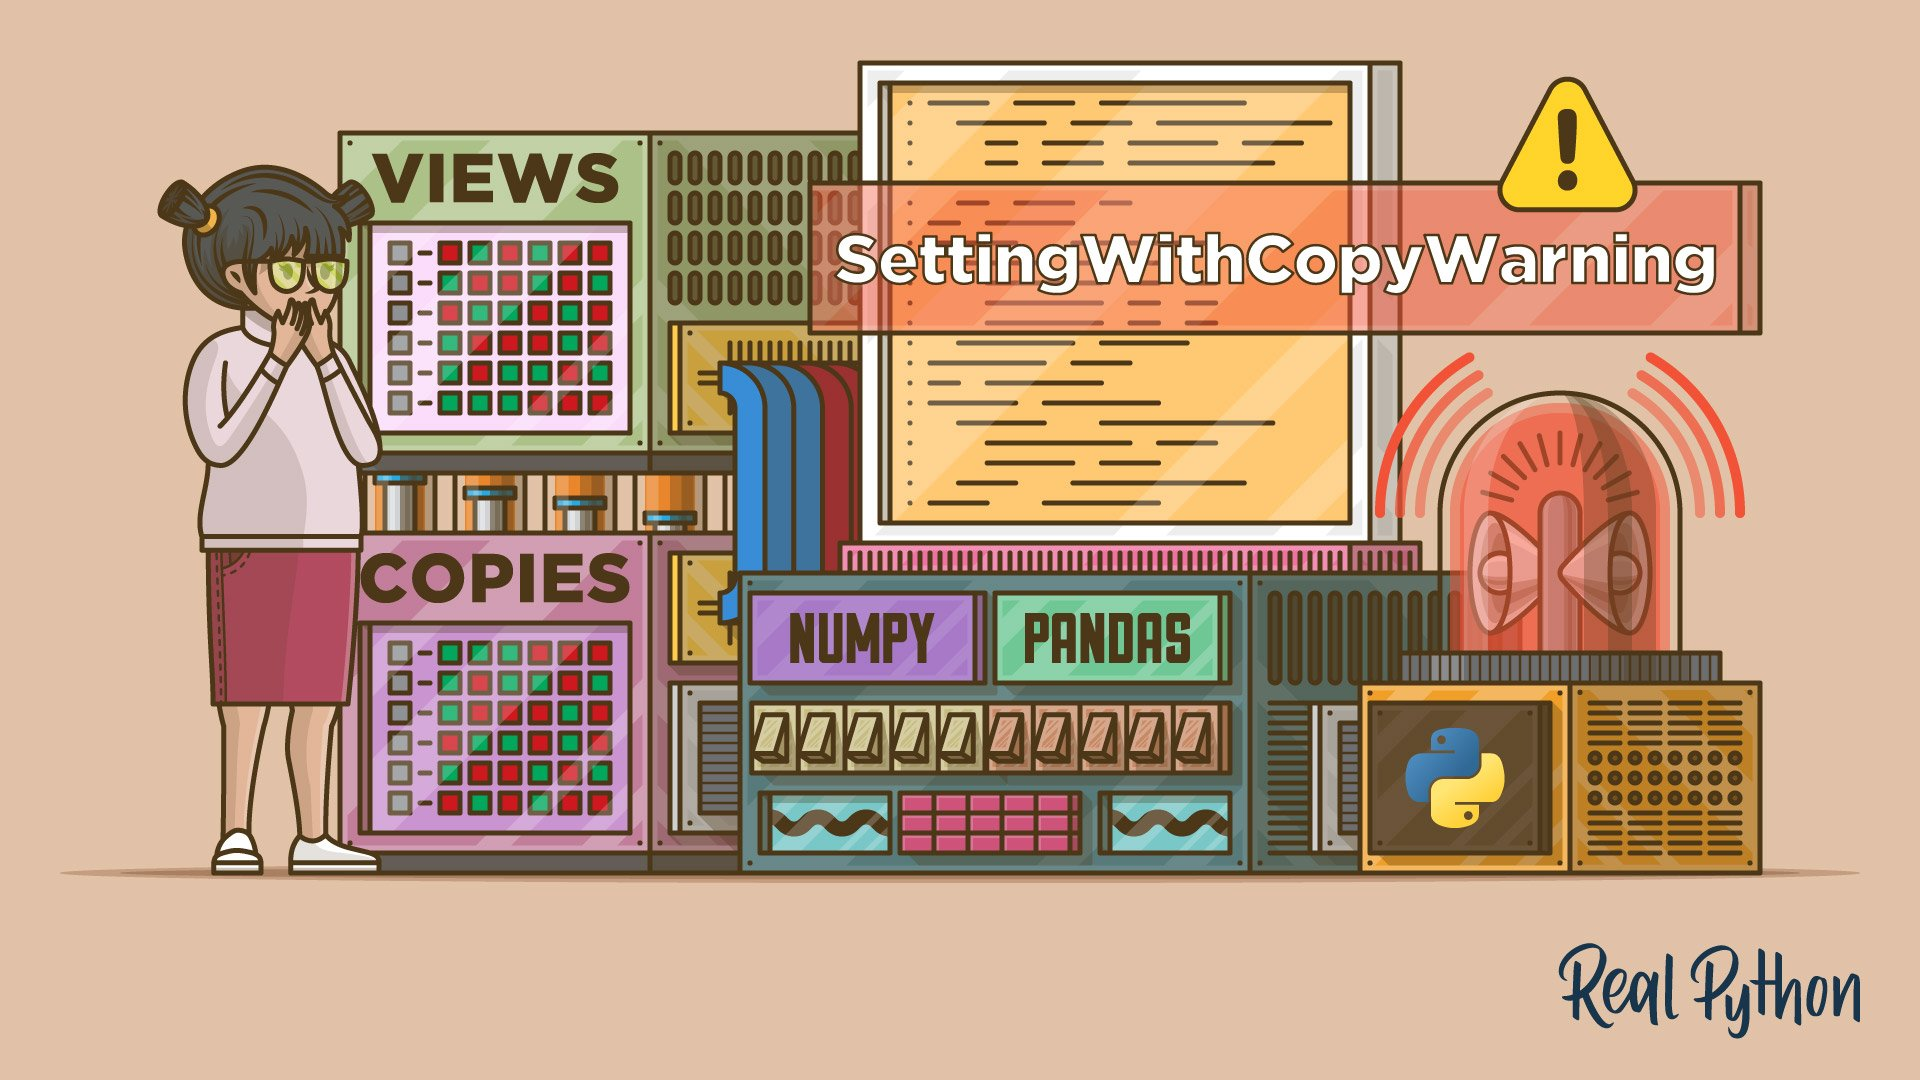 SettingWithCopyWarning in Pandas: Views vs Copies